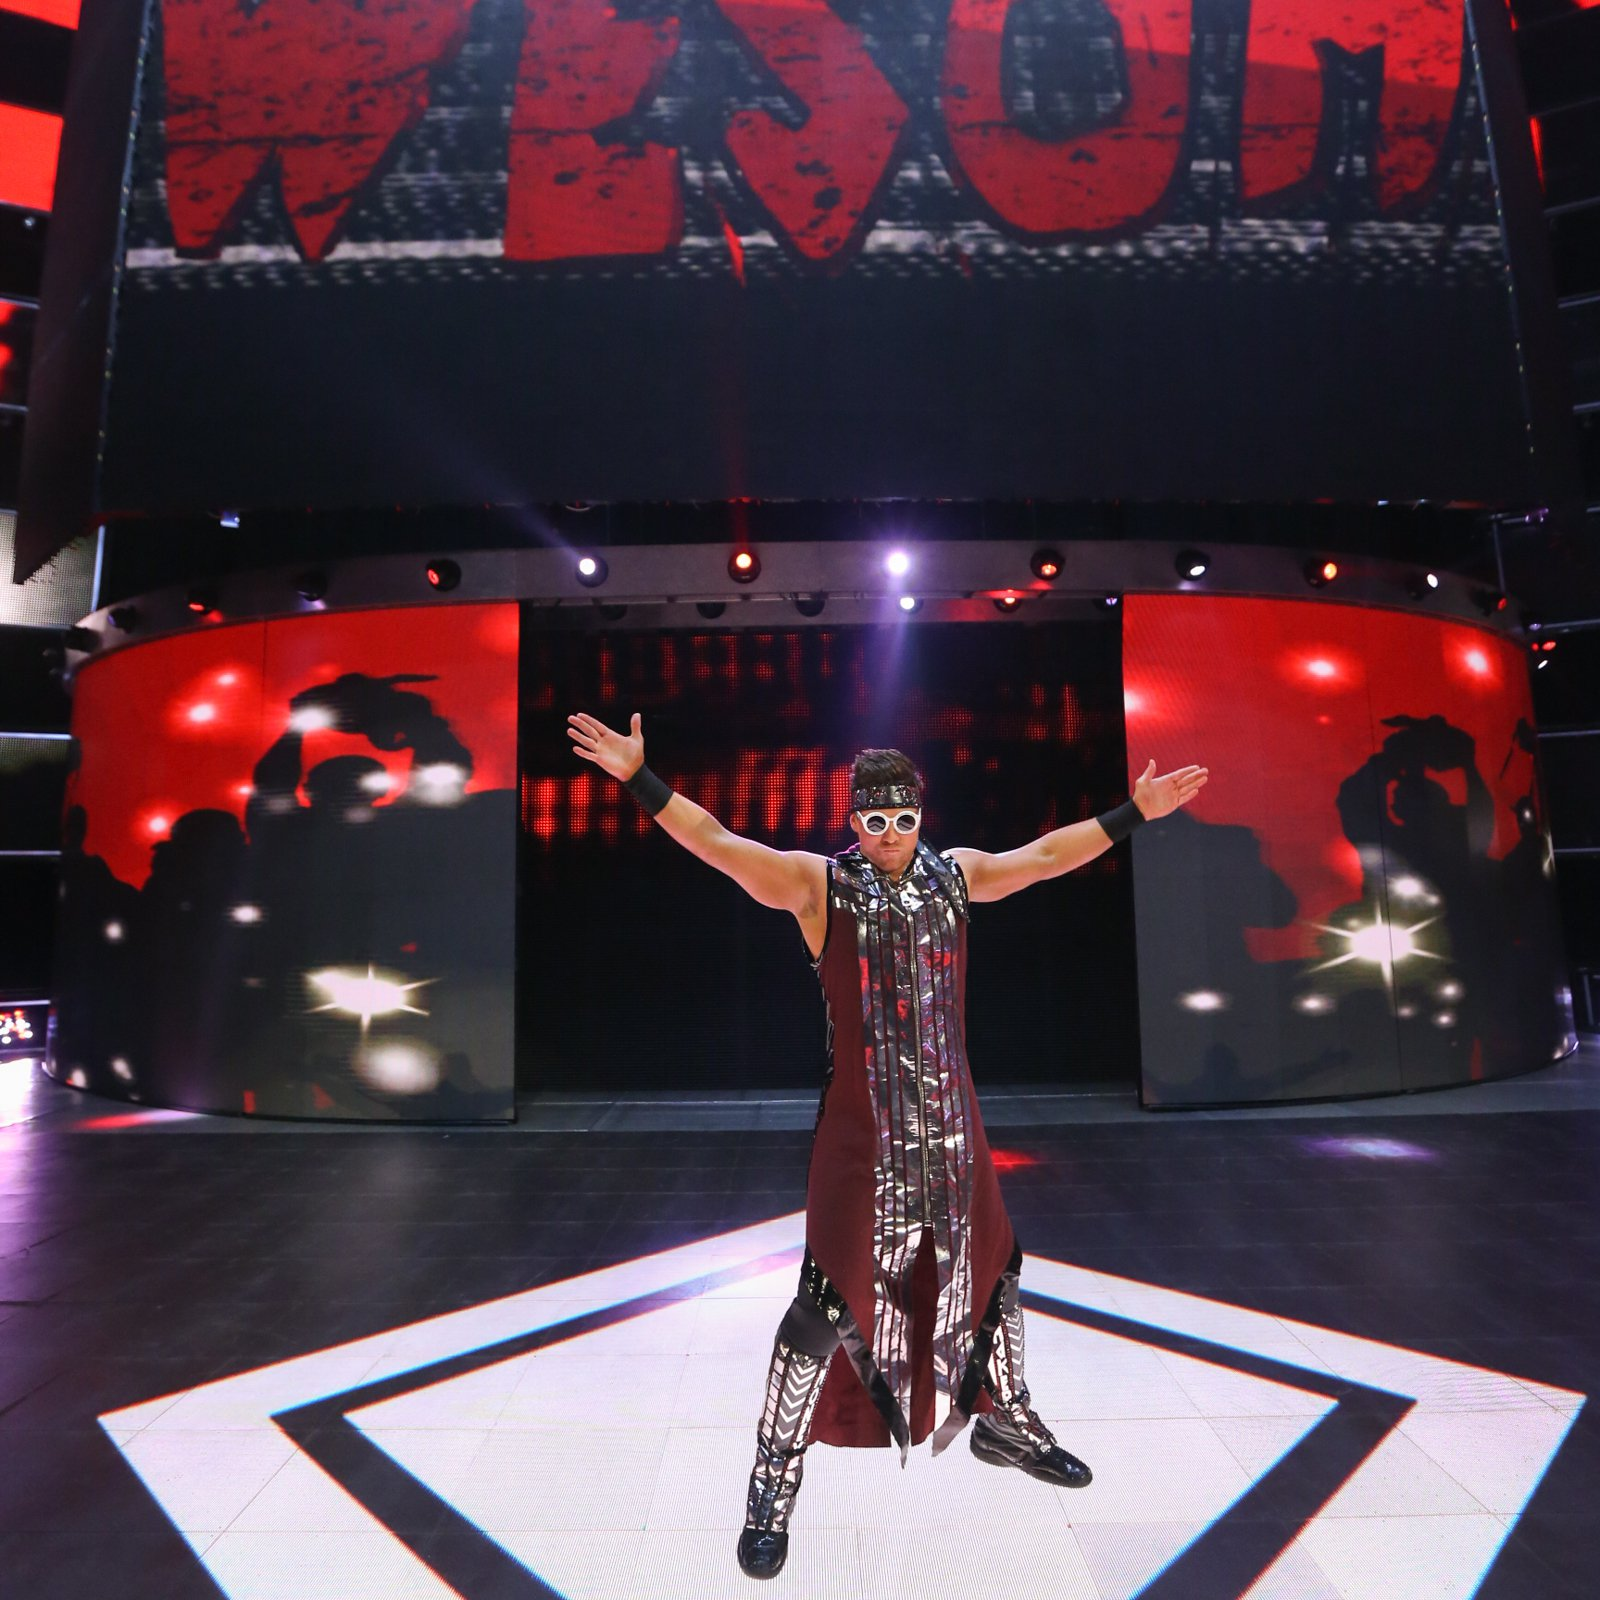 The Miz makes his way to the ring...